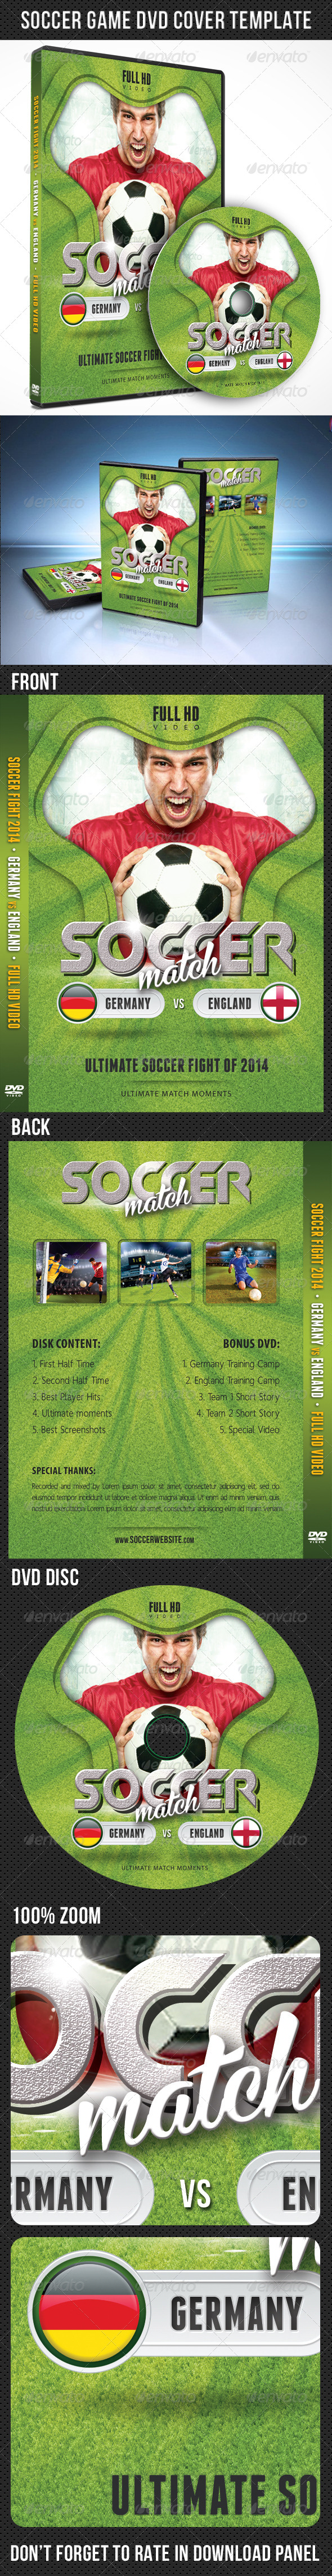 GraphicRiver Soccer Match 2014 DVD Cover Template 02 7843714